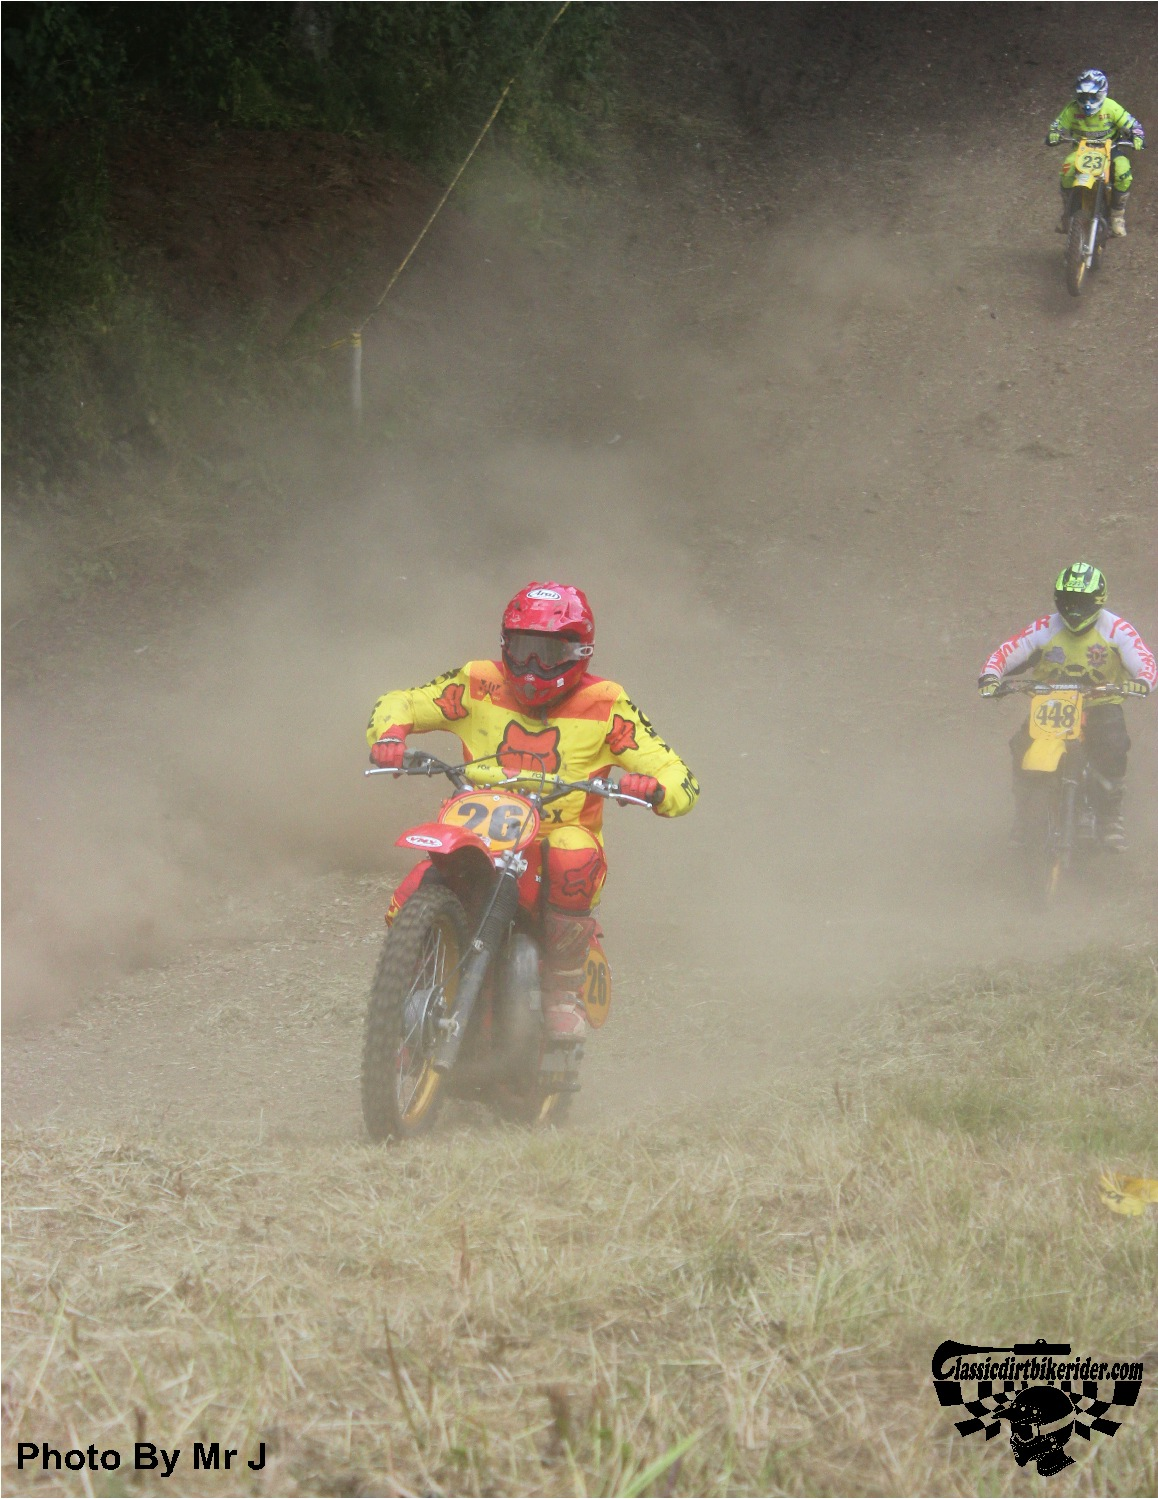 king of the castle 2015 photos Farleigh Castle twinshock motocross classicdirtbikerider.com 48